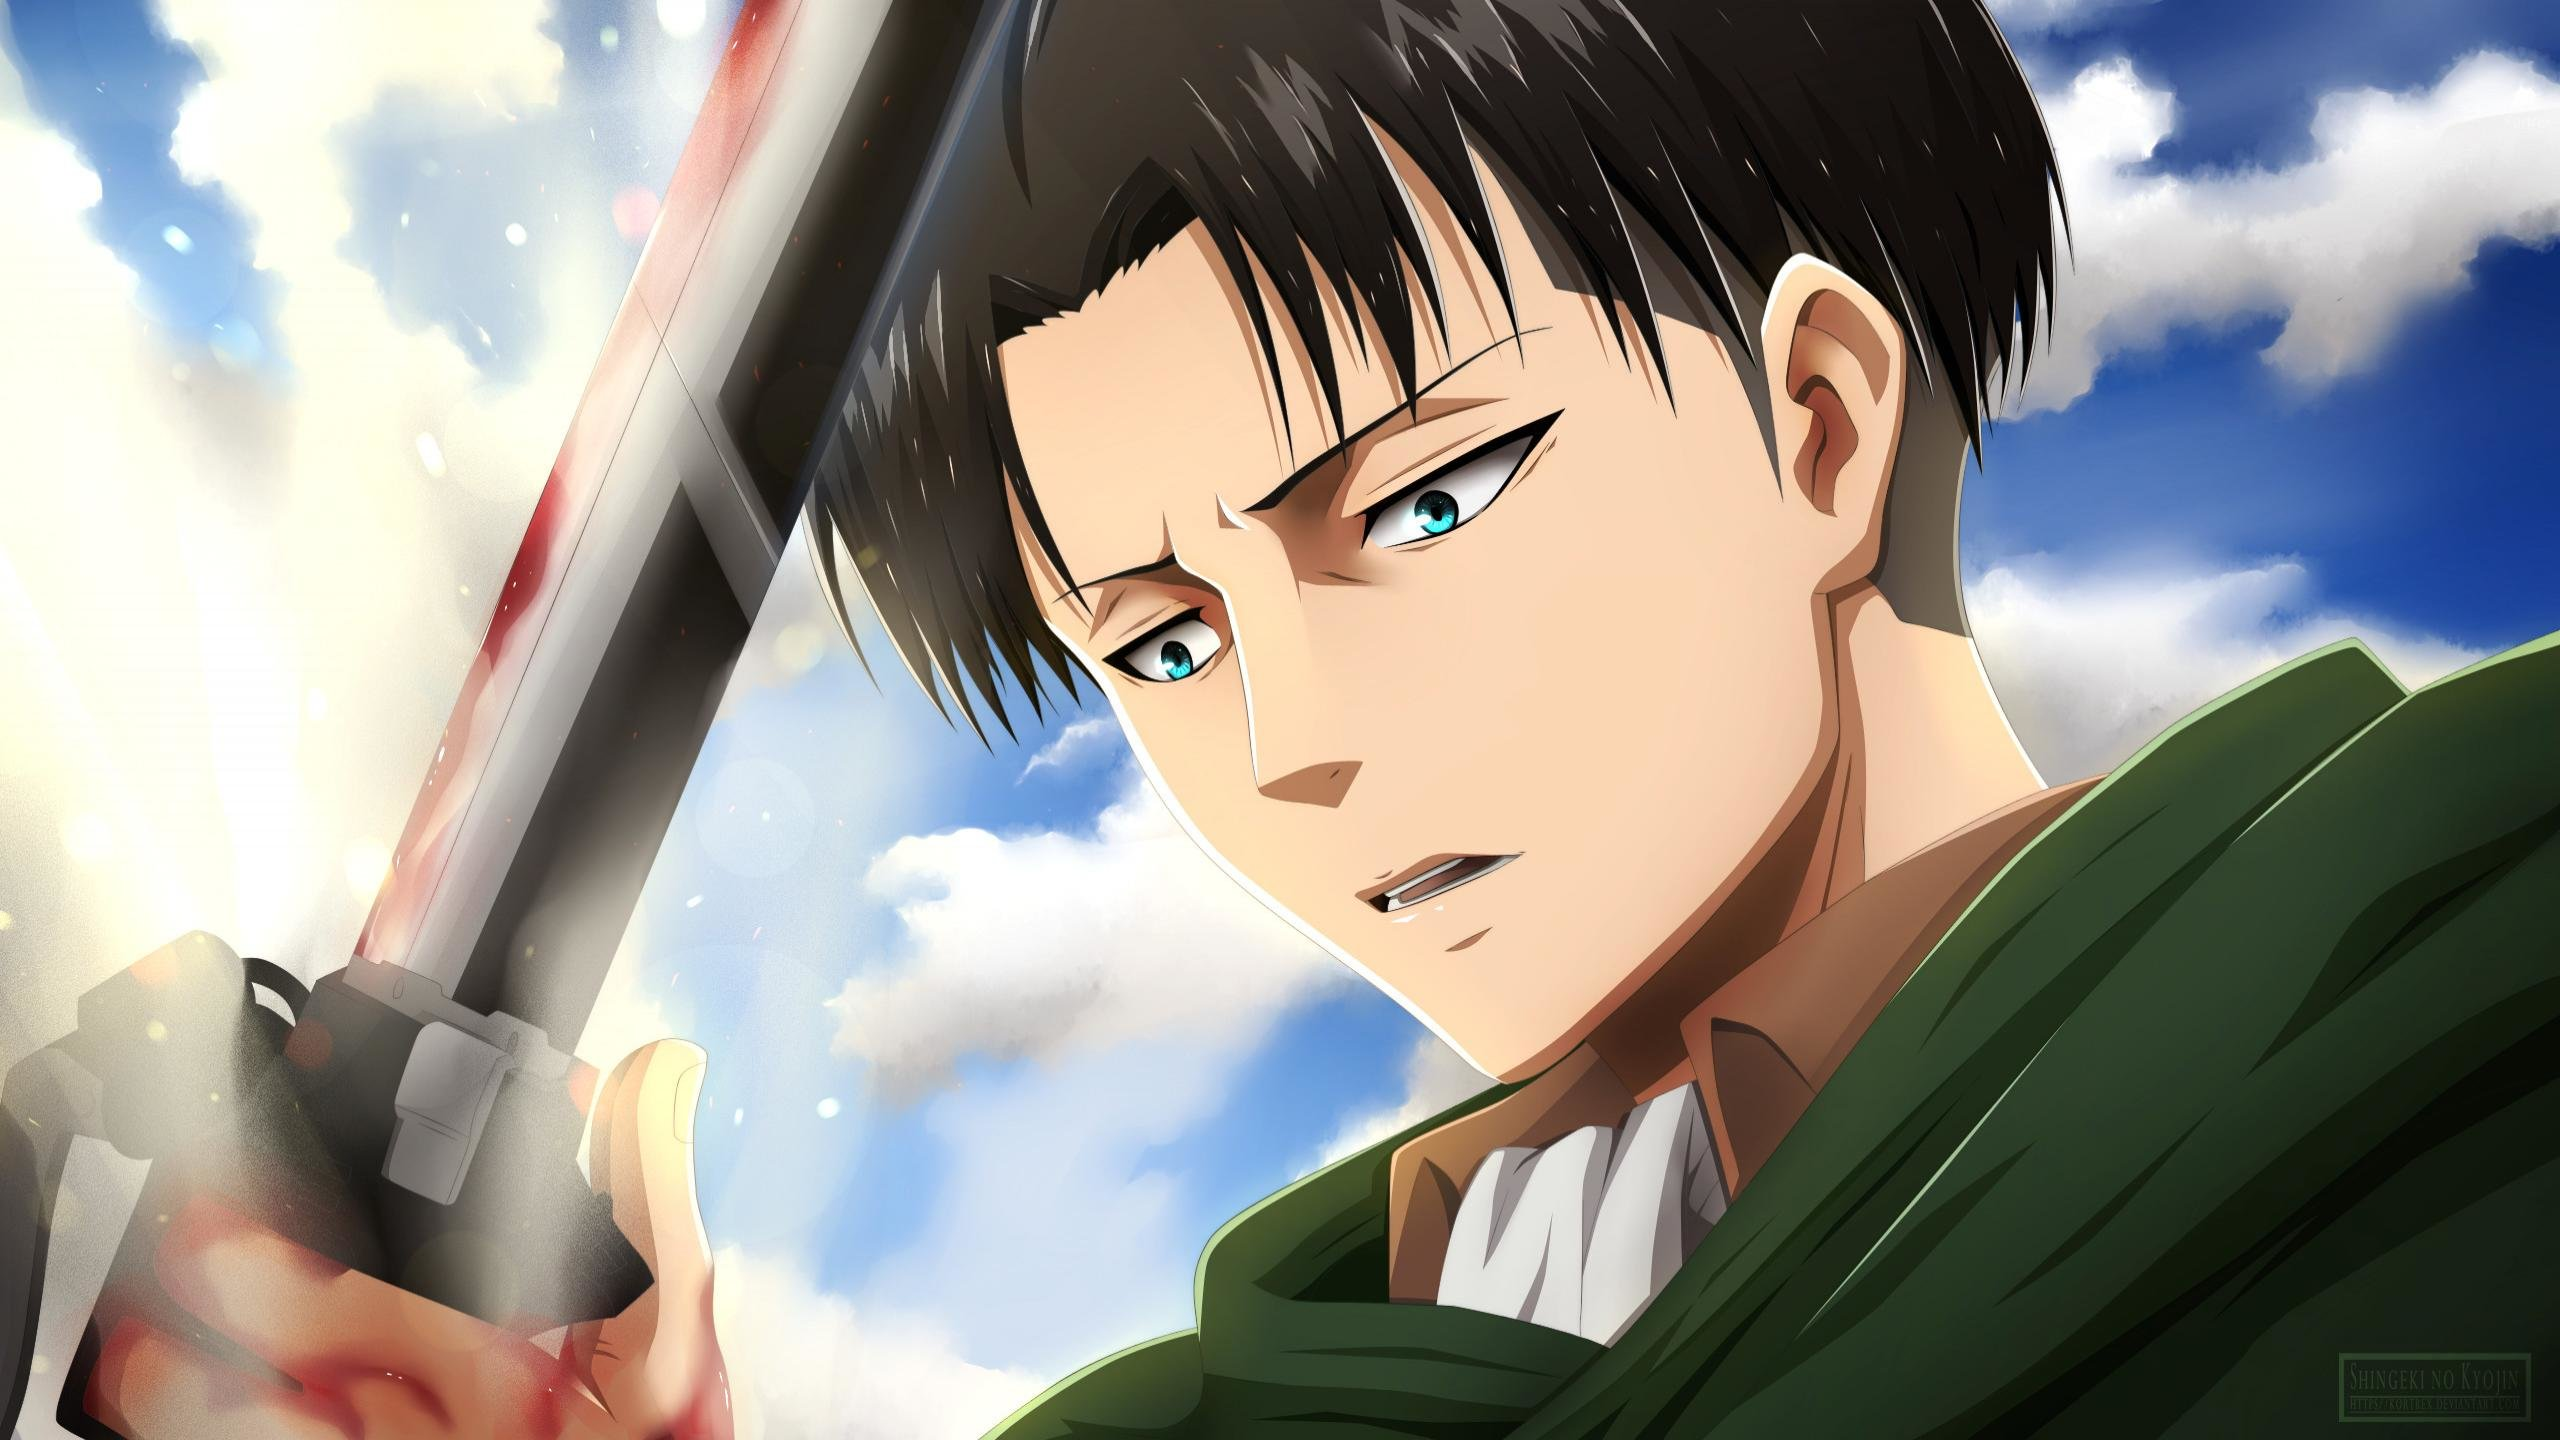 Levi Ackerman Wallpapers 2560x1440 Desktop Backgrounds